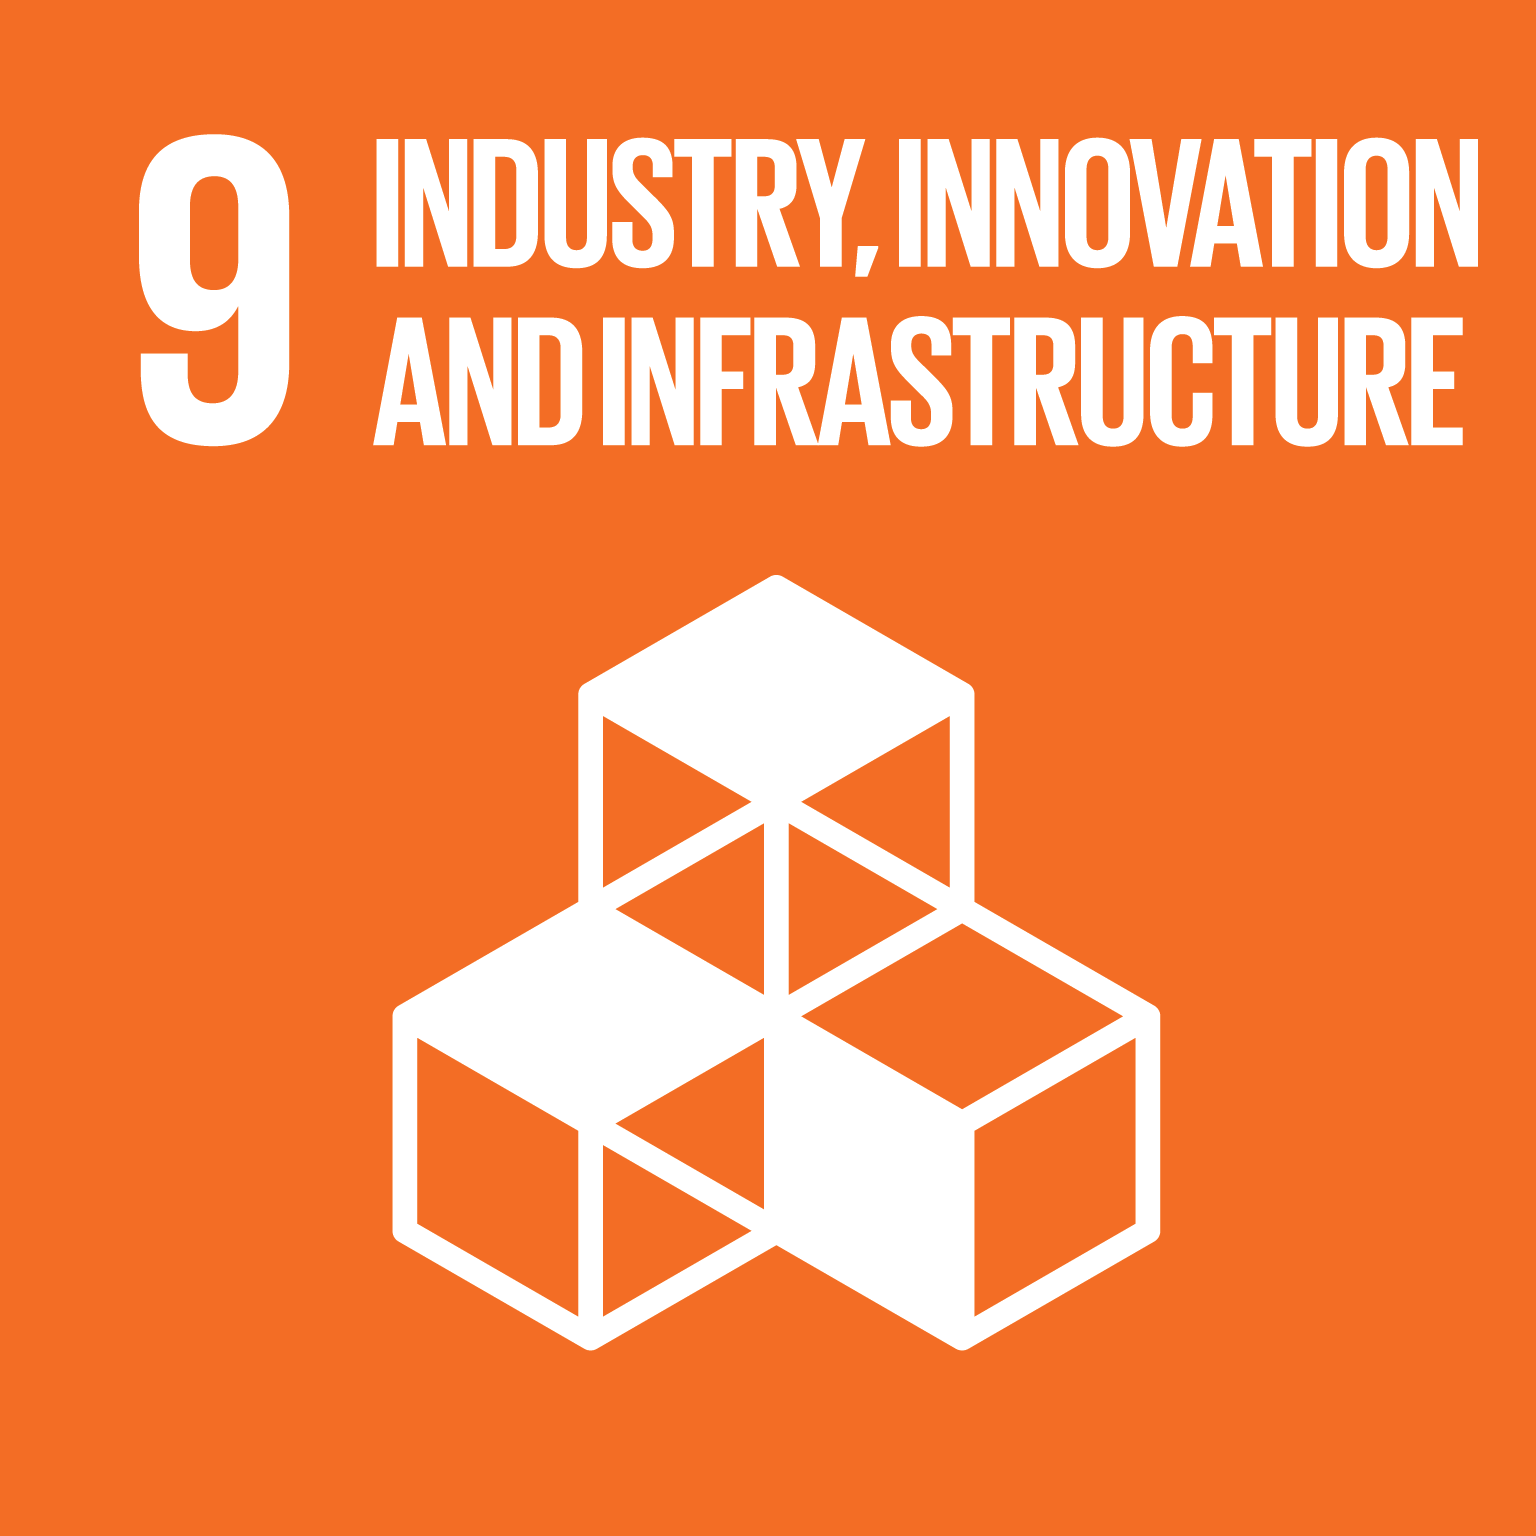 Goal 9: Build resilient infrastructure, promote sustainable industrialization and foster innovation